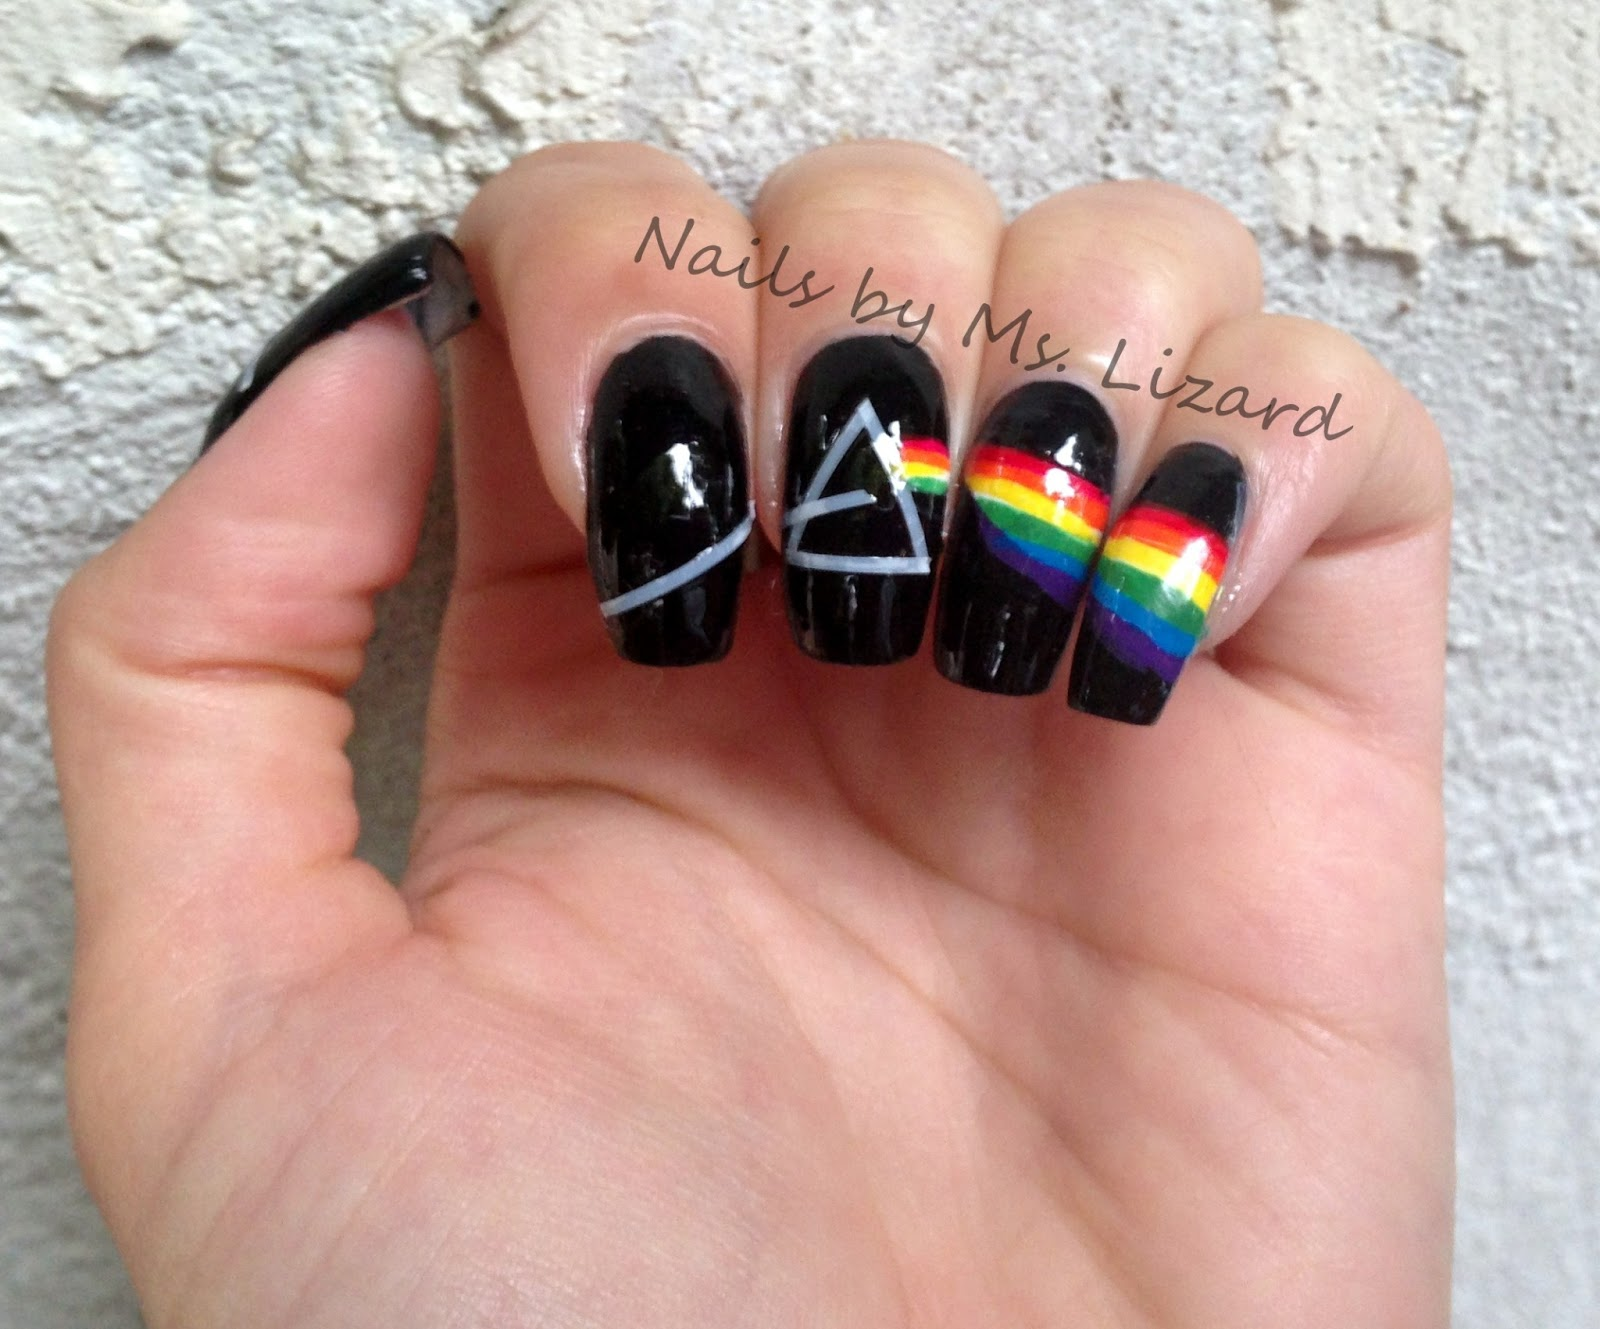 Nails by Ms. Lizard: The Darkside of the Moon